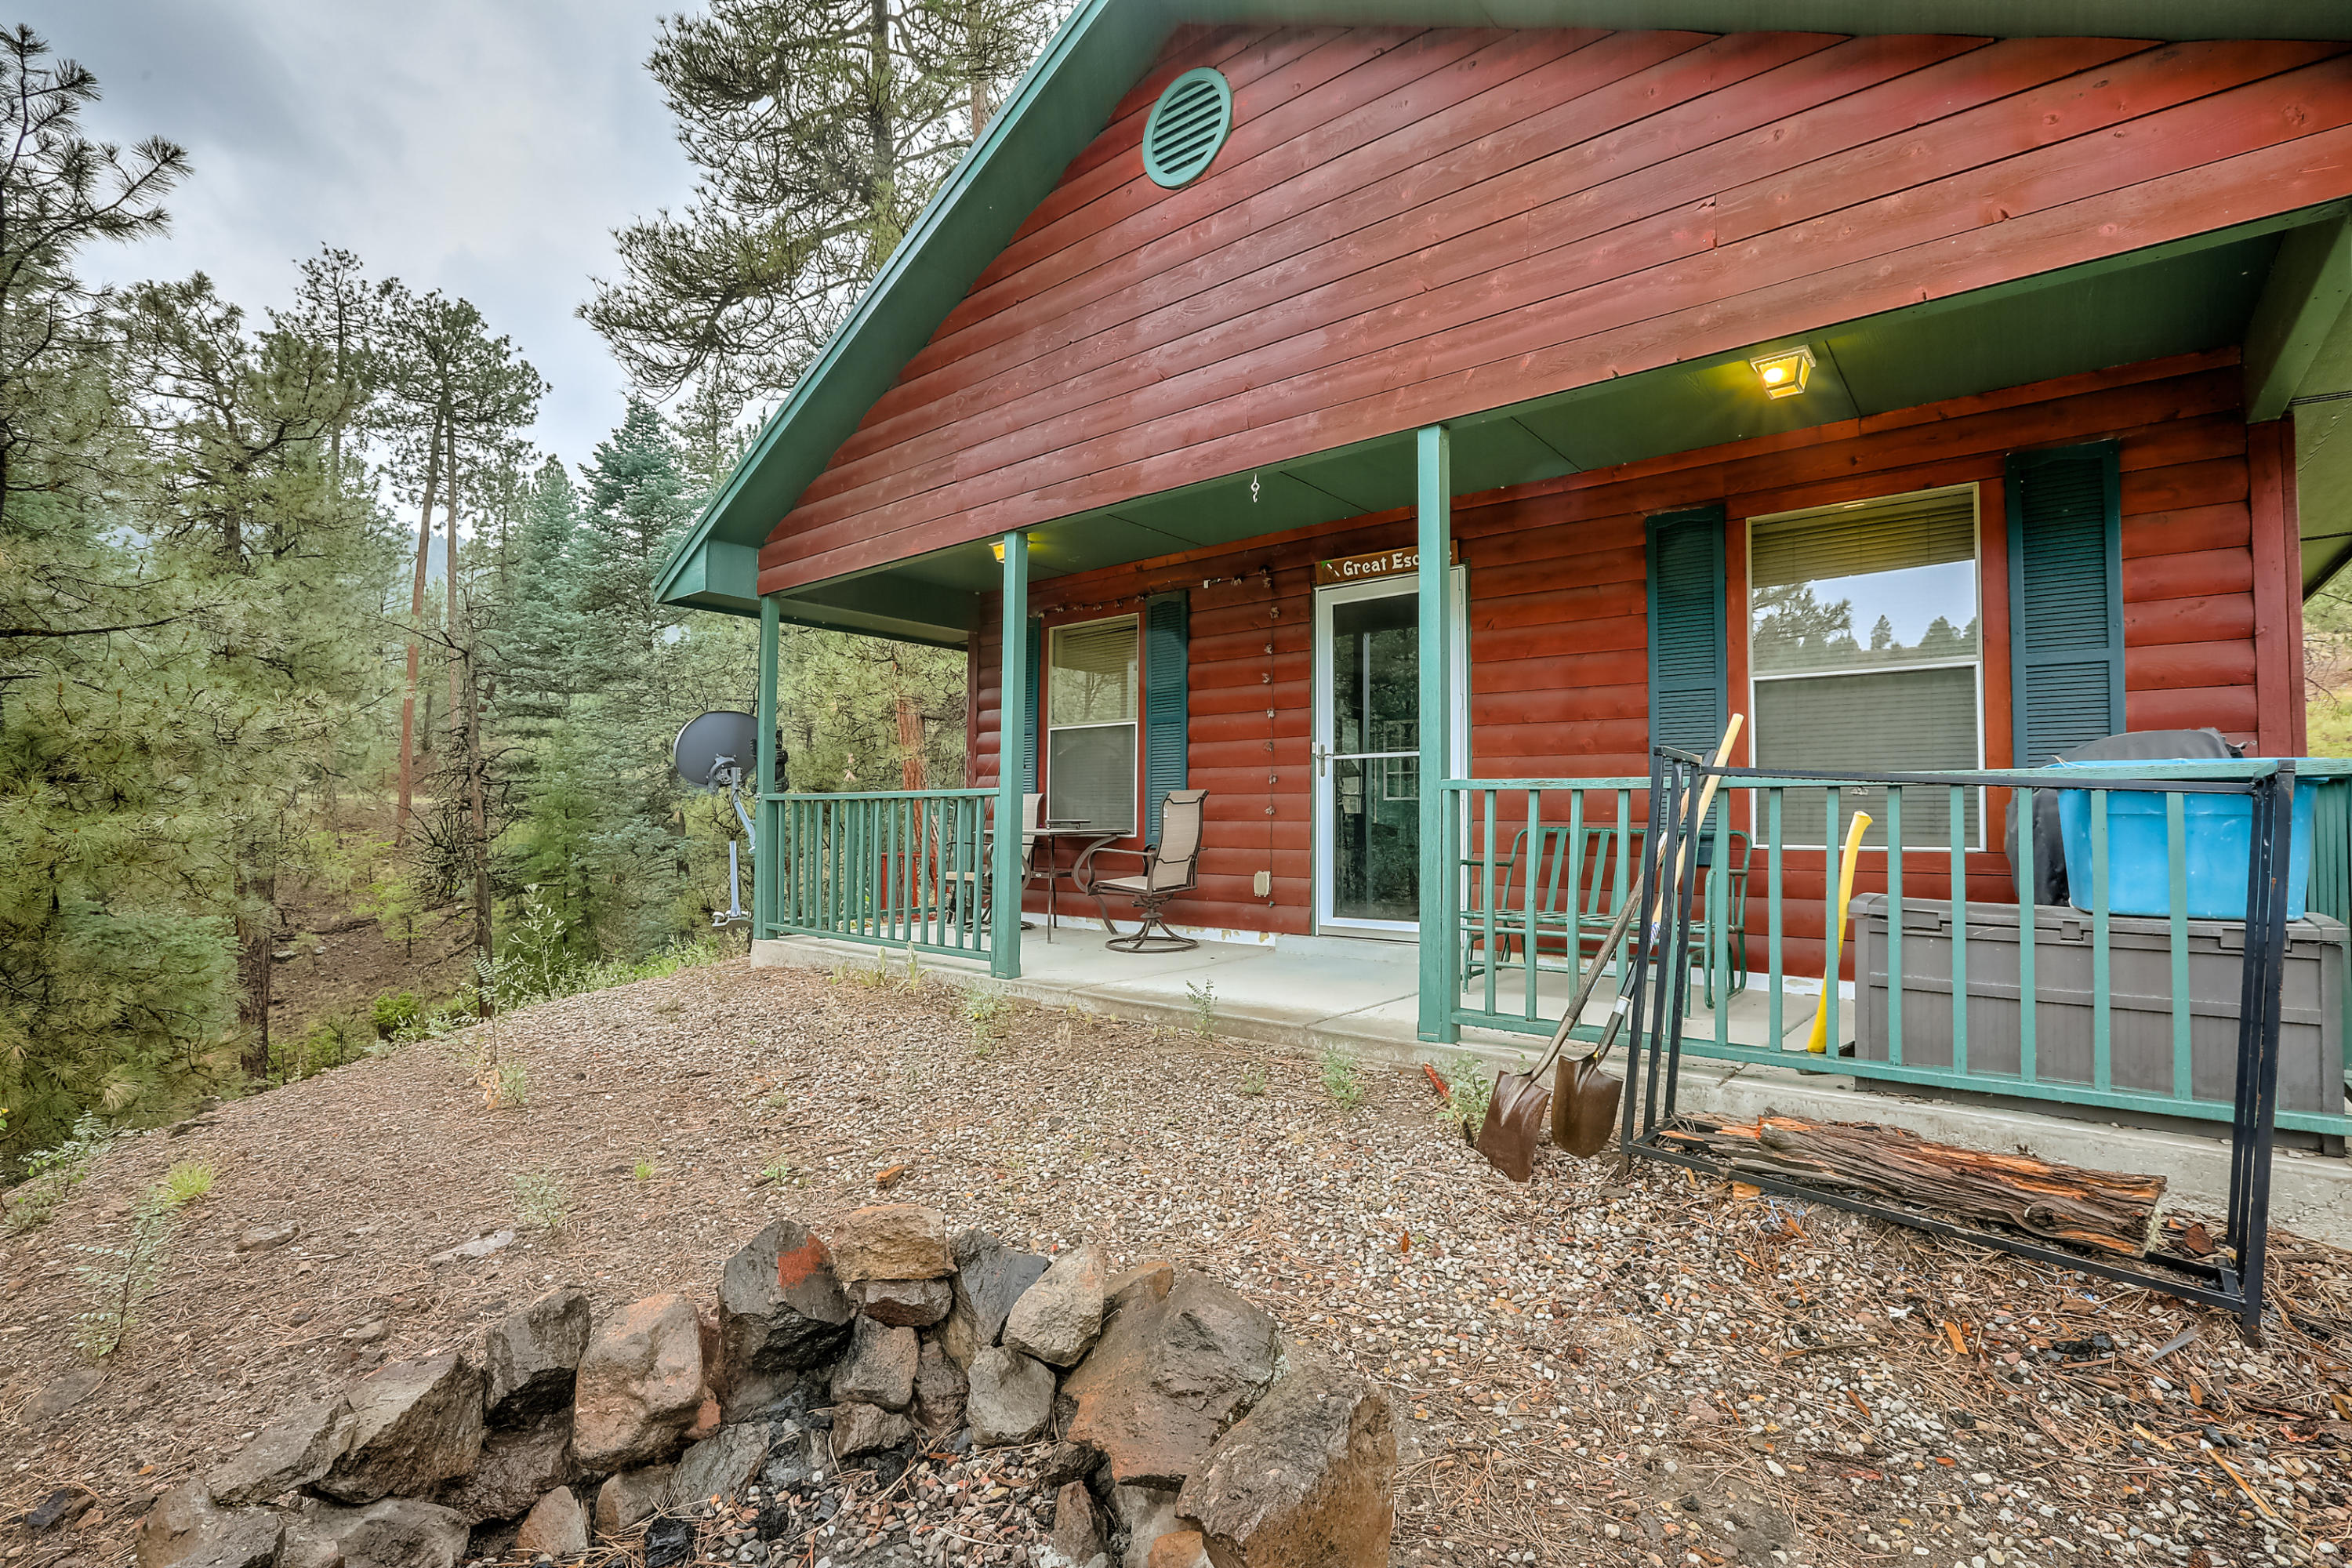 94 VISTA Loop Property Photo - Jemez Springs, NM real estate listing